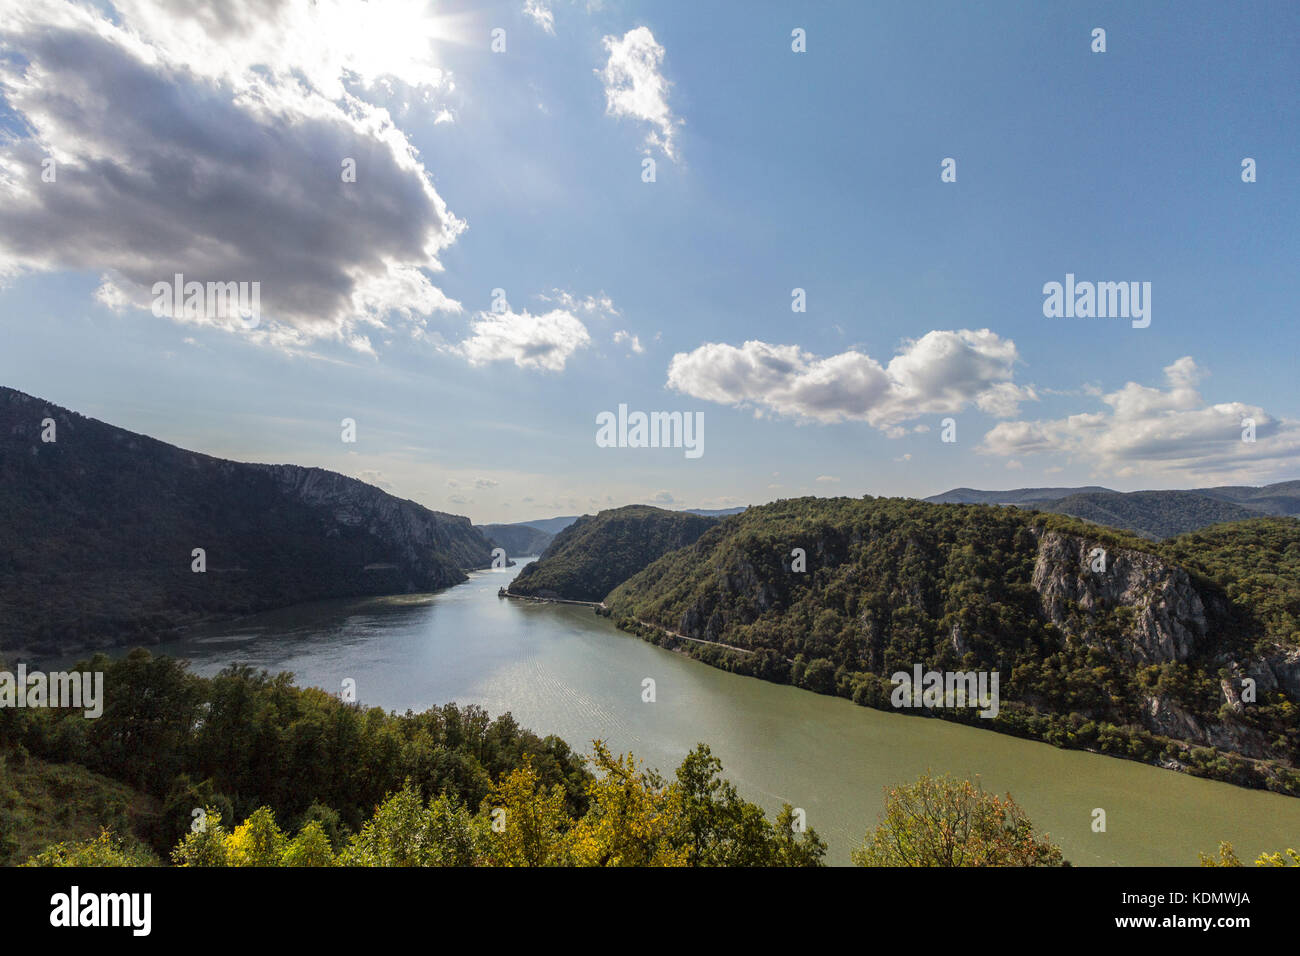 Danube river near the Serbian city of Donji Milanovac in the Iron Gates, also known as Djerdap, which are the Danube - Stock Image